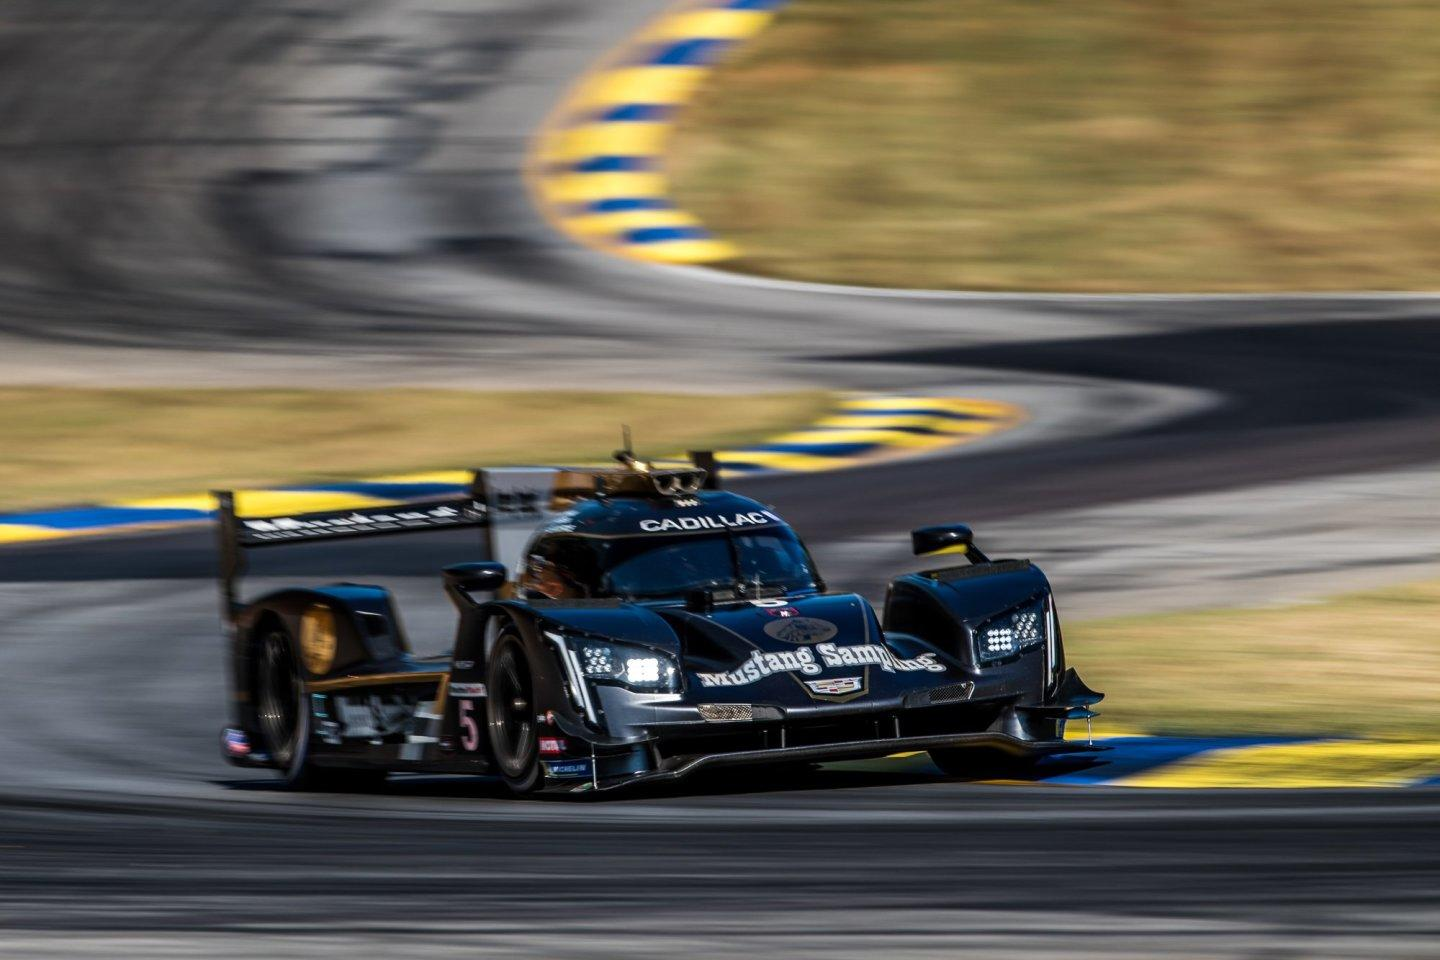 joao-barbosa-filipe-albuquerque-imsa-road-atlanta-2019